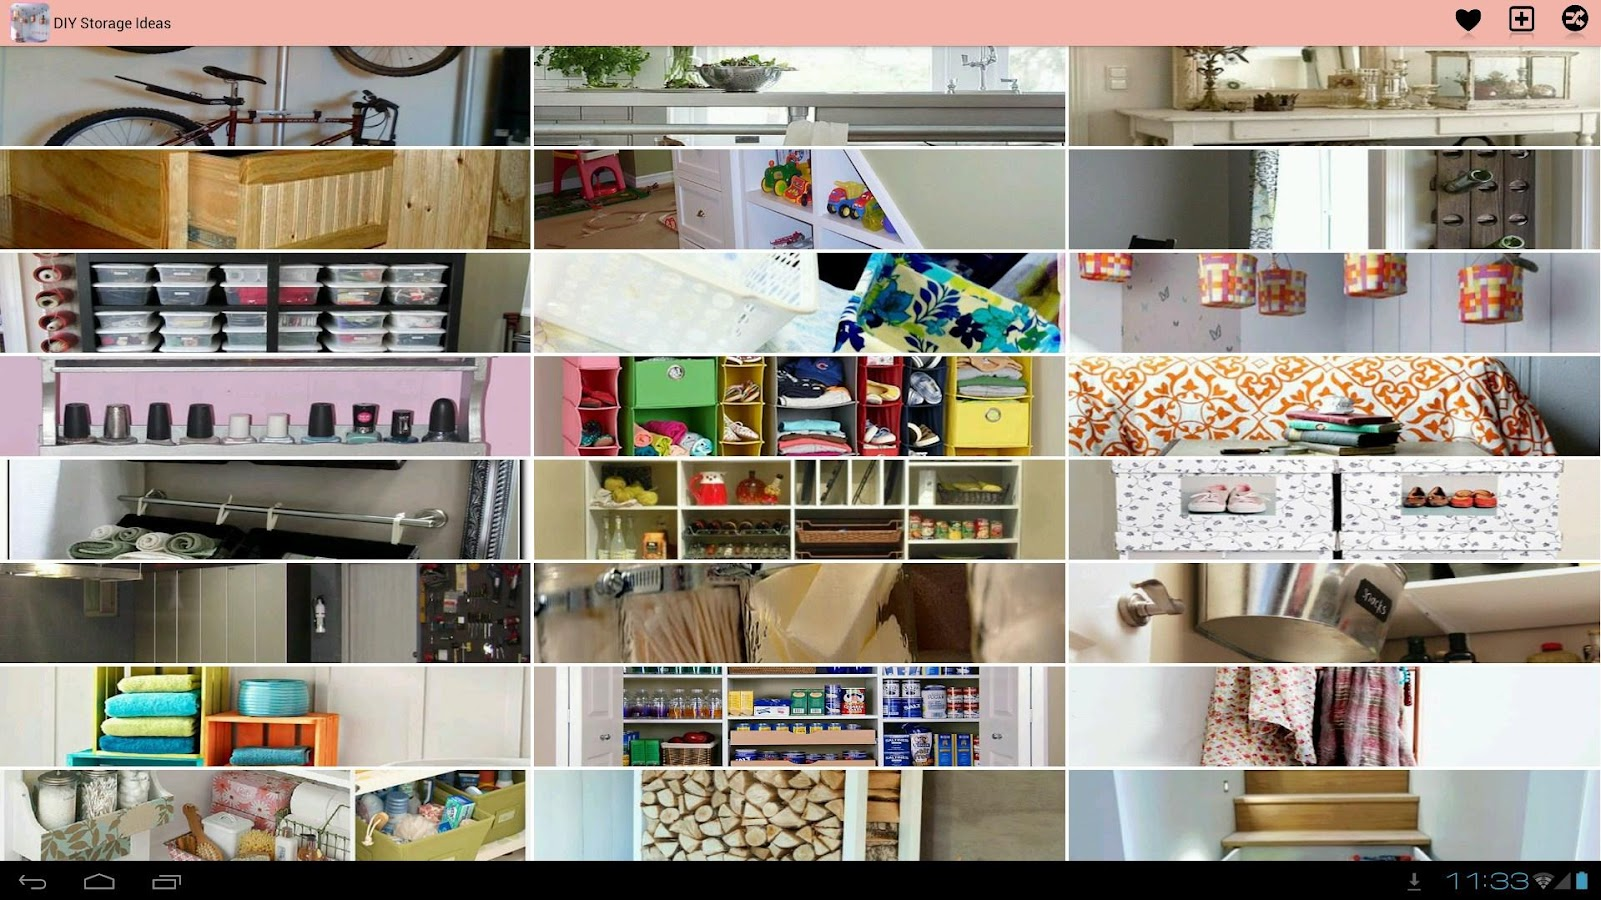 100 storage ideas diy 38 creative storage solutions for sma